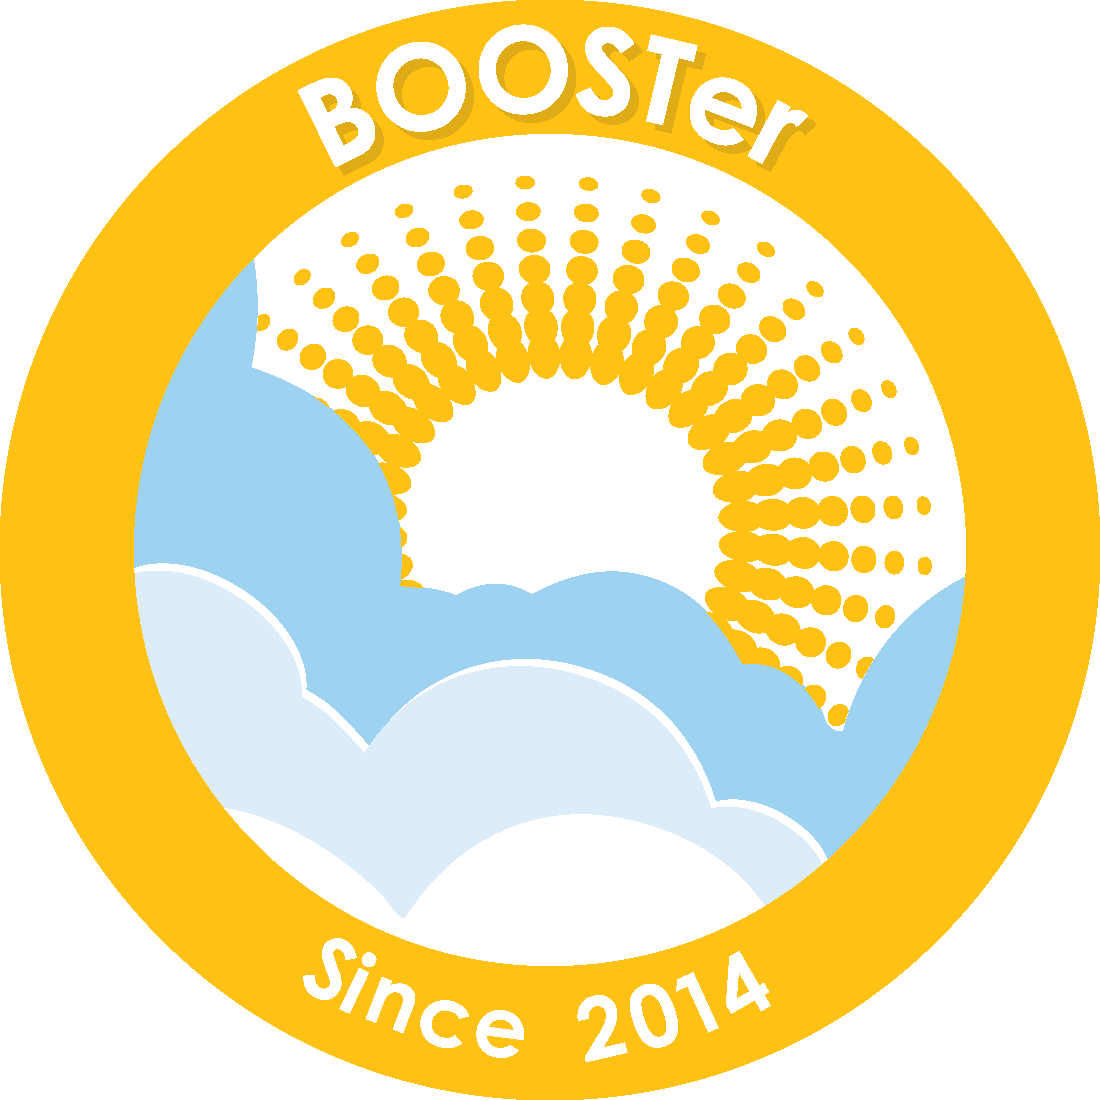 2014 BOOSTer Since badge